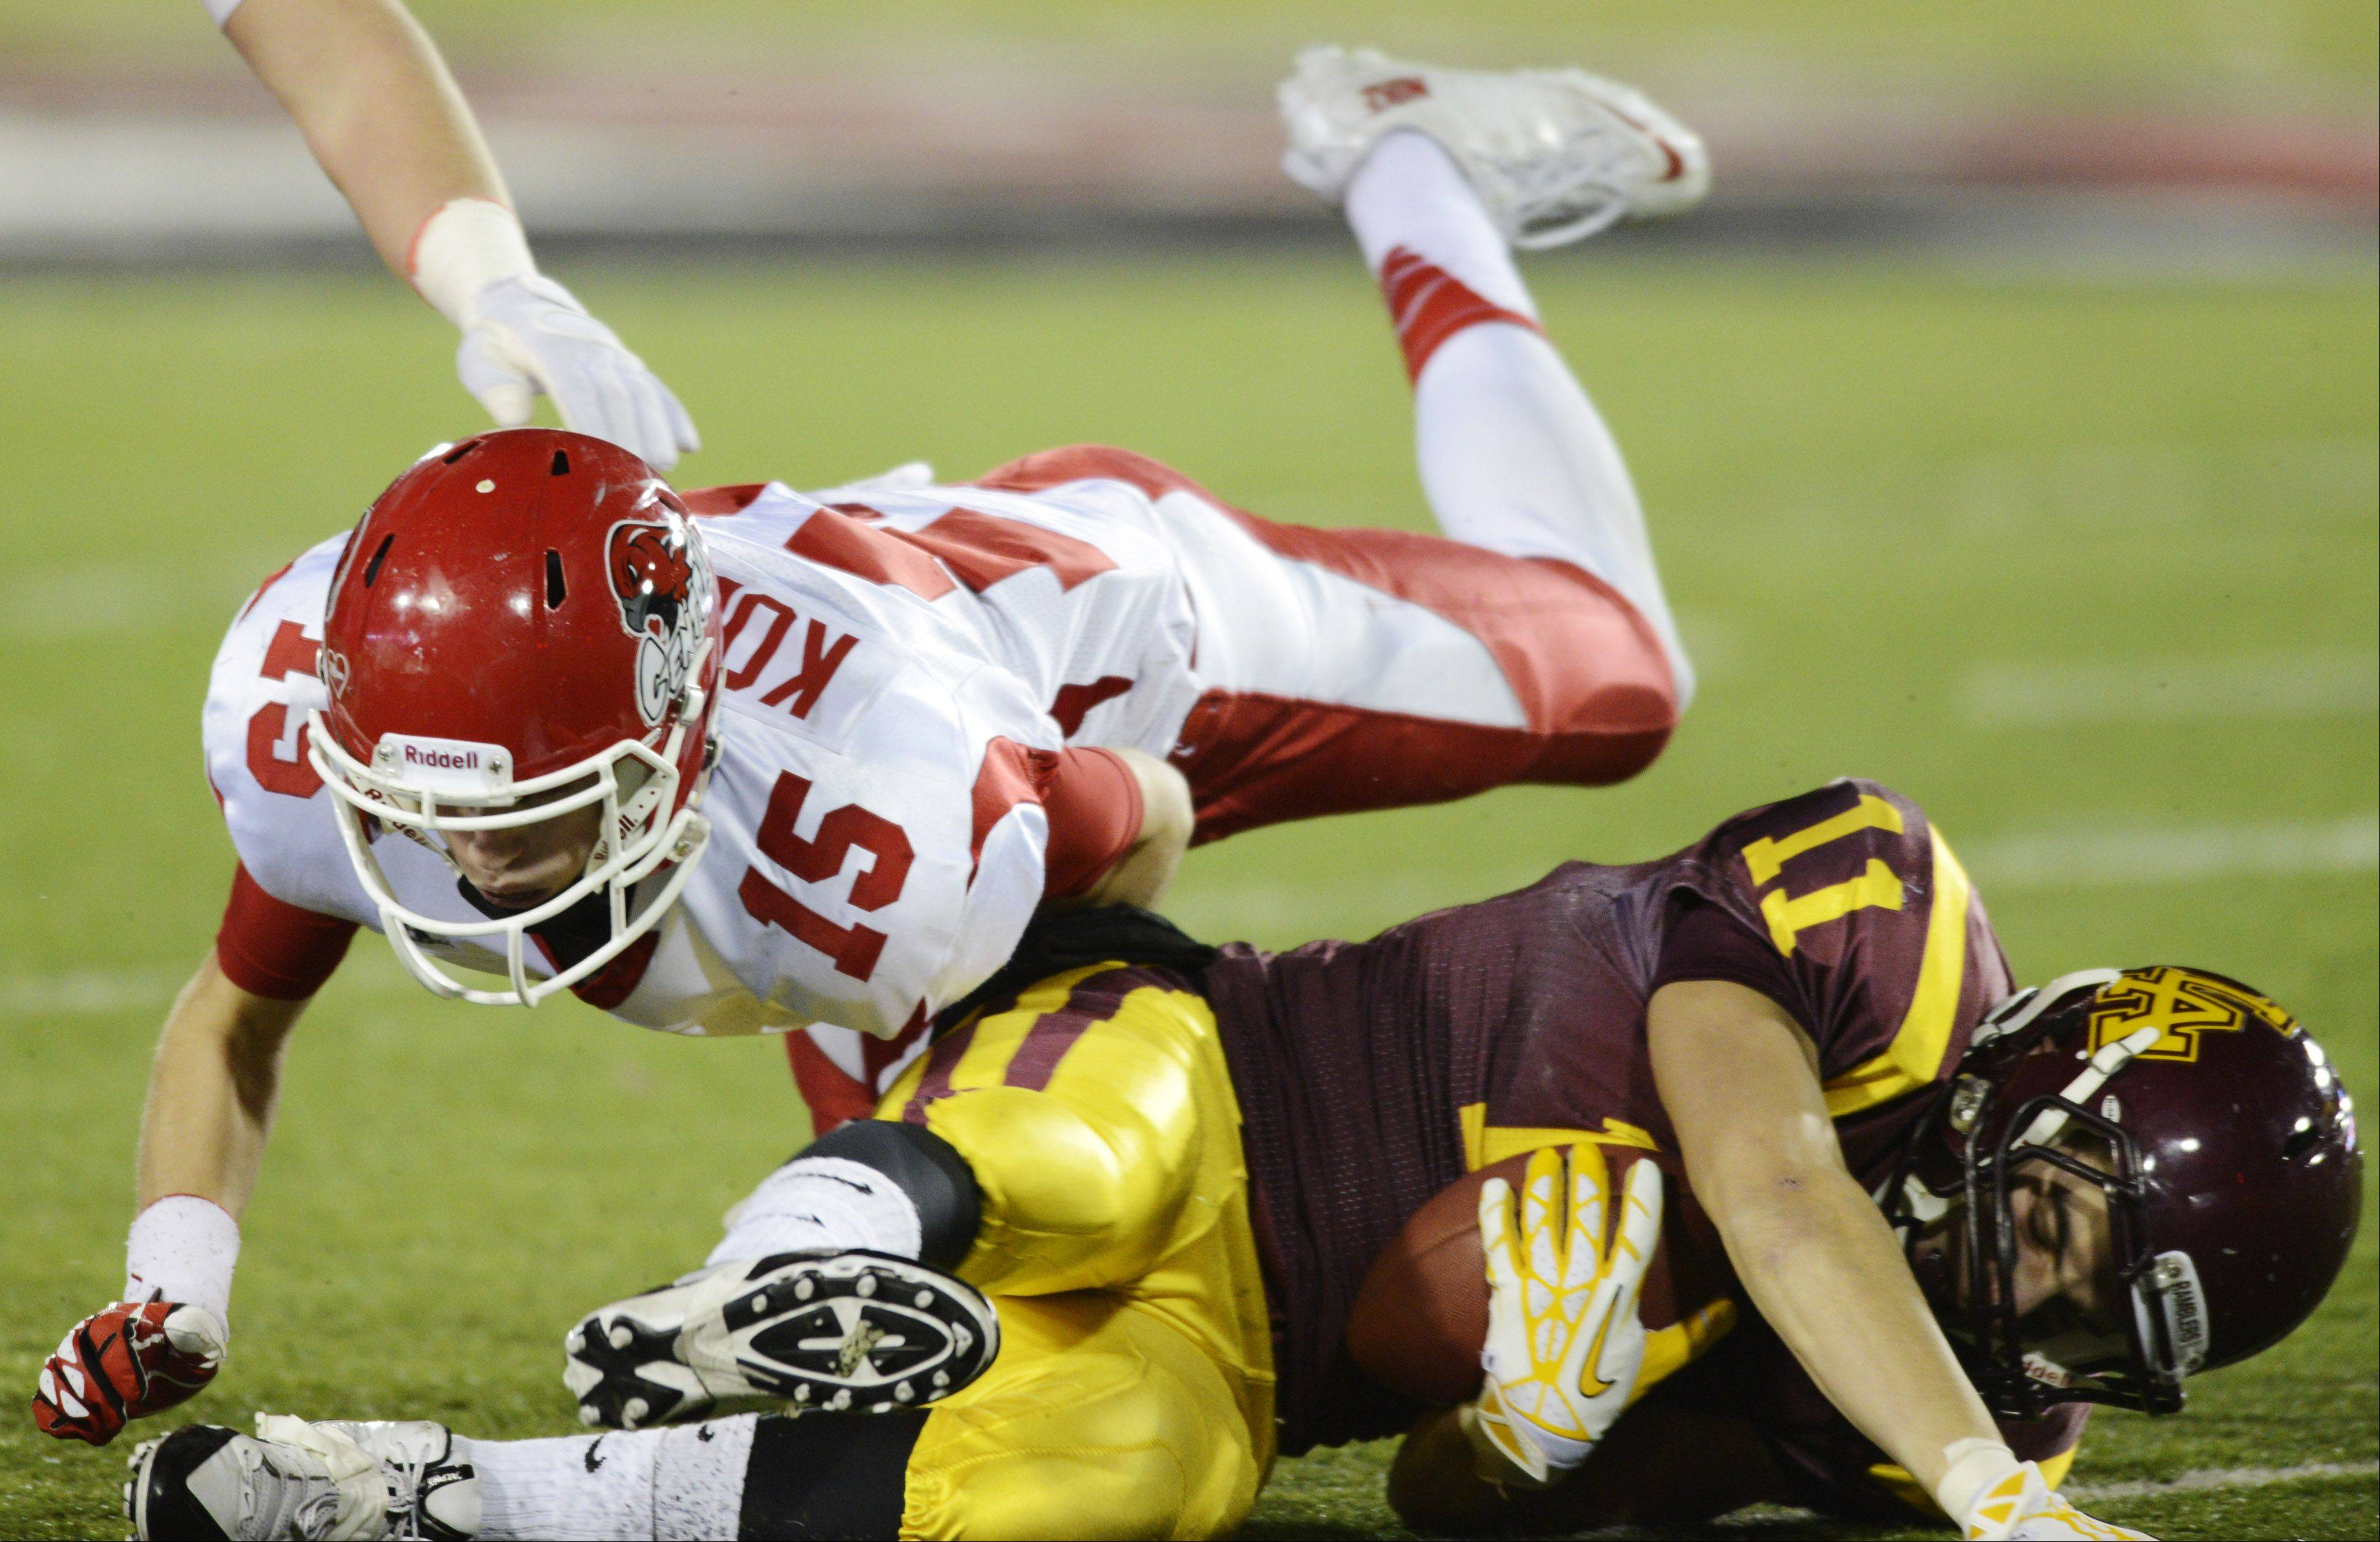 Naperville Central's Michael Kolzow tackles Loyola's Joe Joyce during the class 8A football final in DeKalb Saturday.